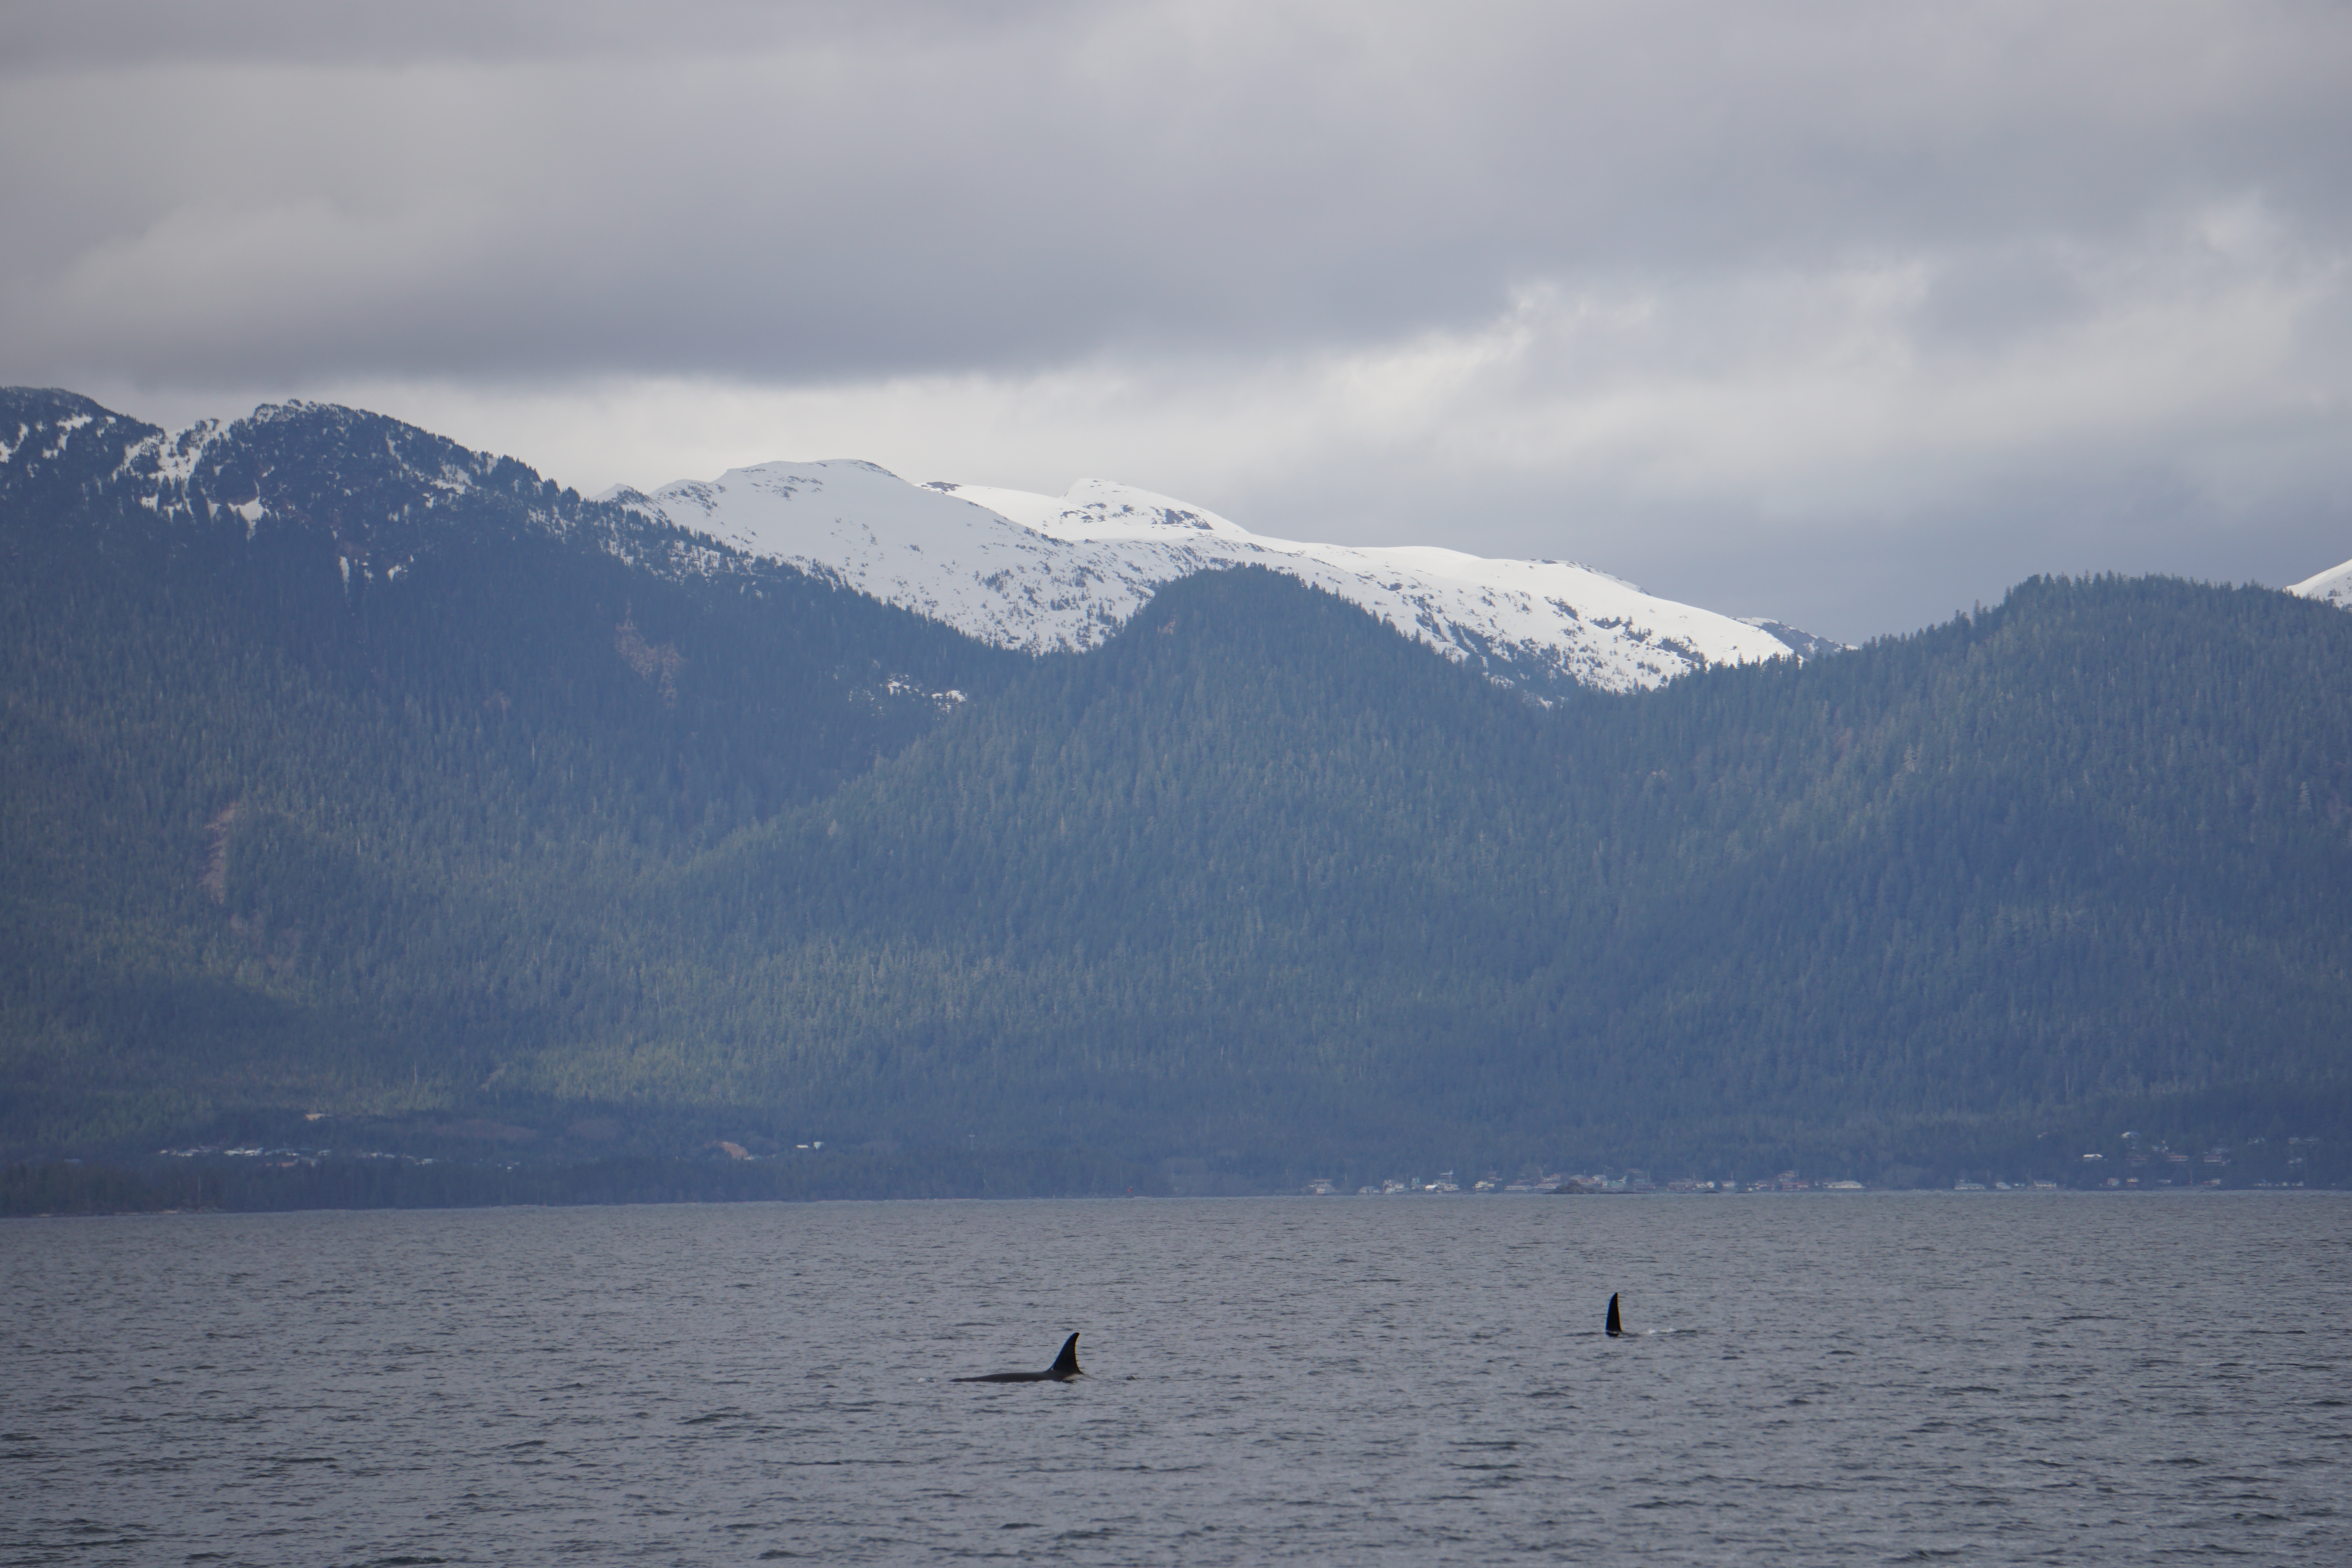 Two Orca Whales